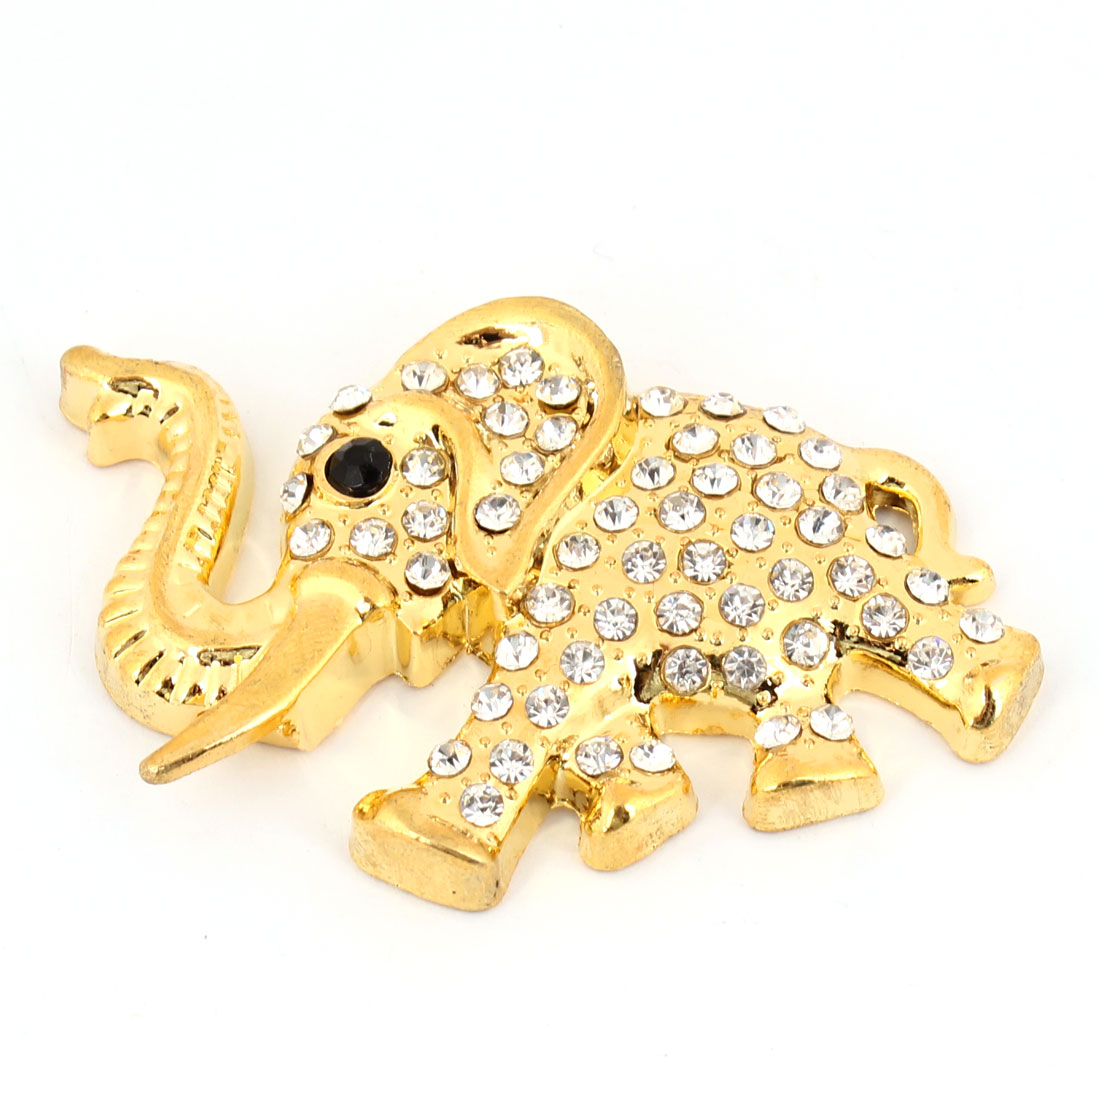 Gold Tone Elephant Shape Metal Rhinestones 3D Detail Sticker for Car